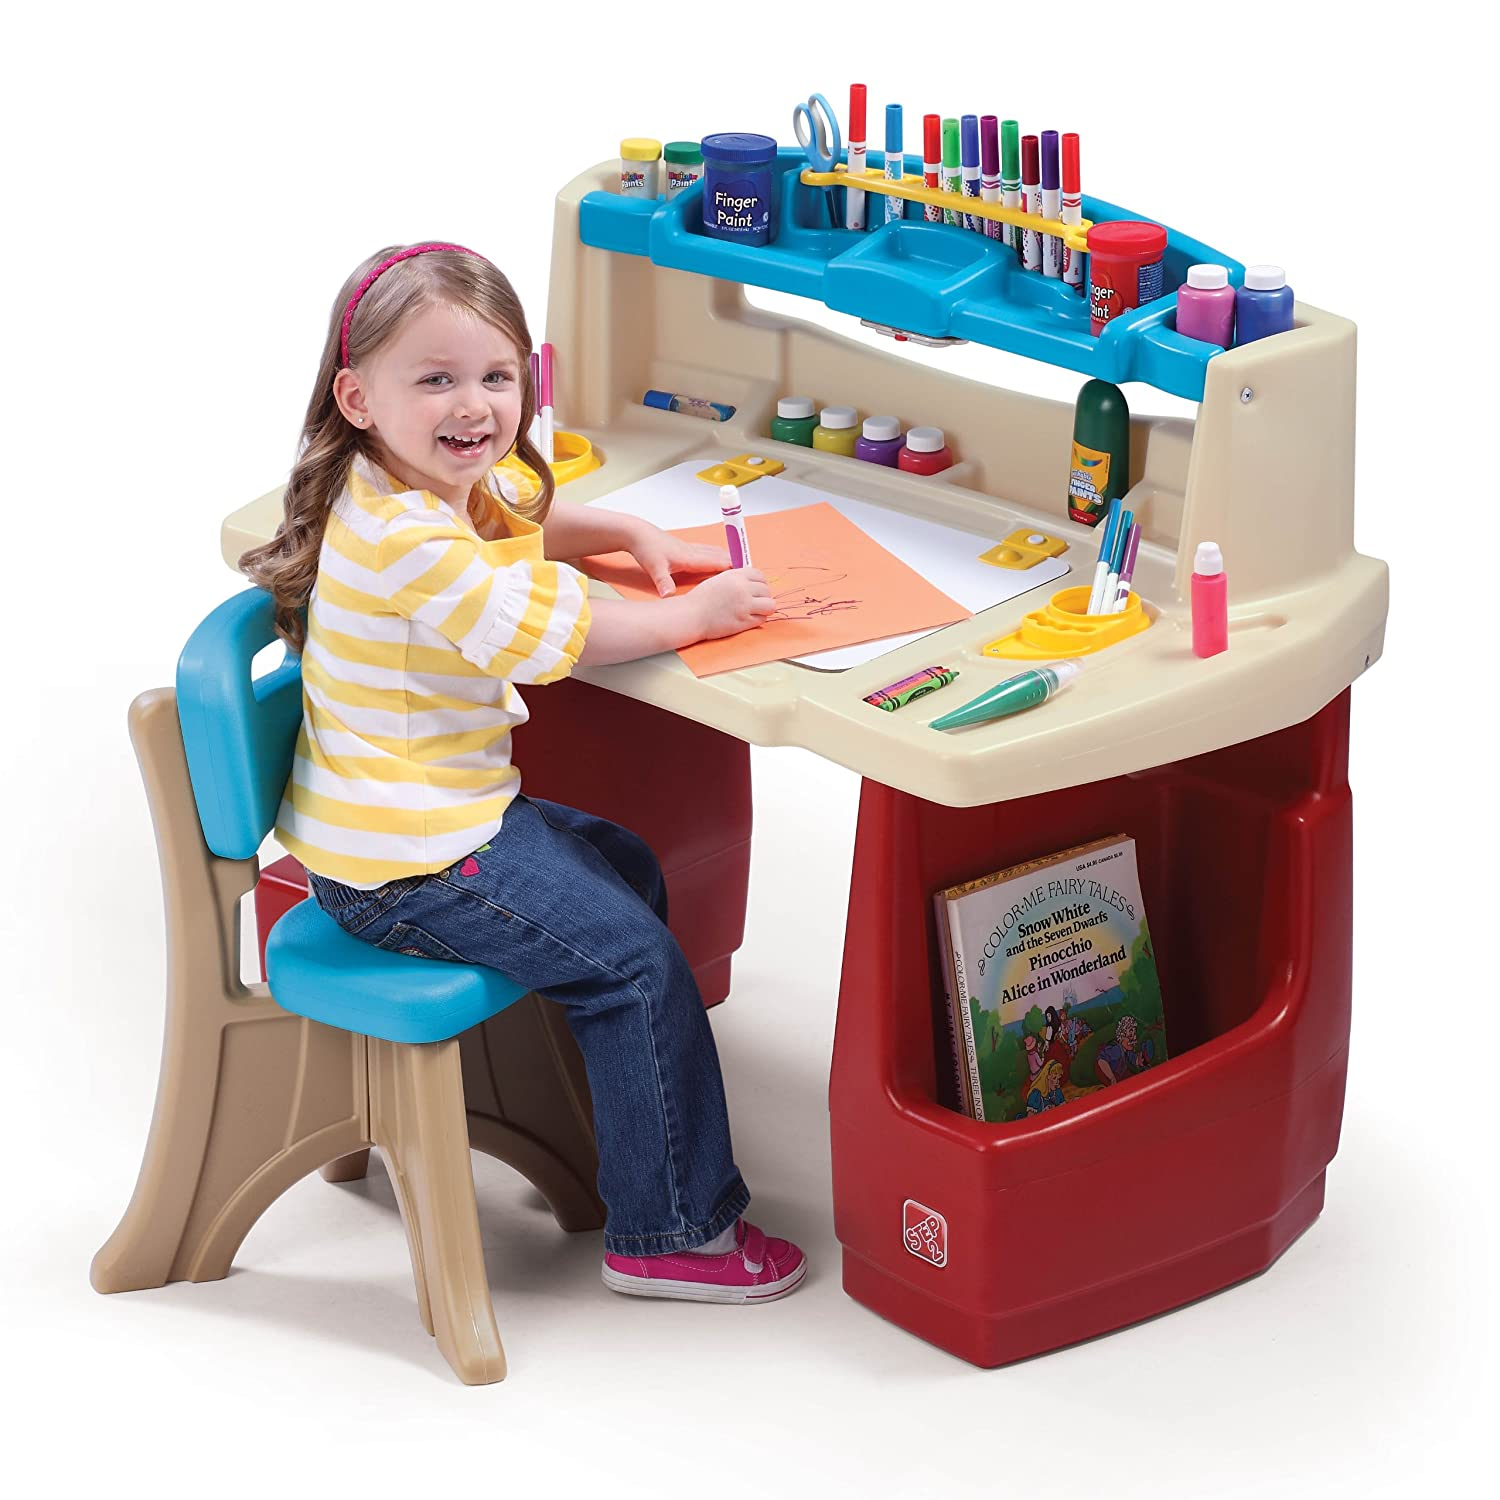 Amazoncom Step2 Deluxe Art Master Kids Desk Toys Games